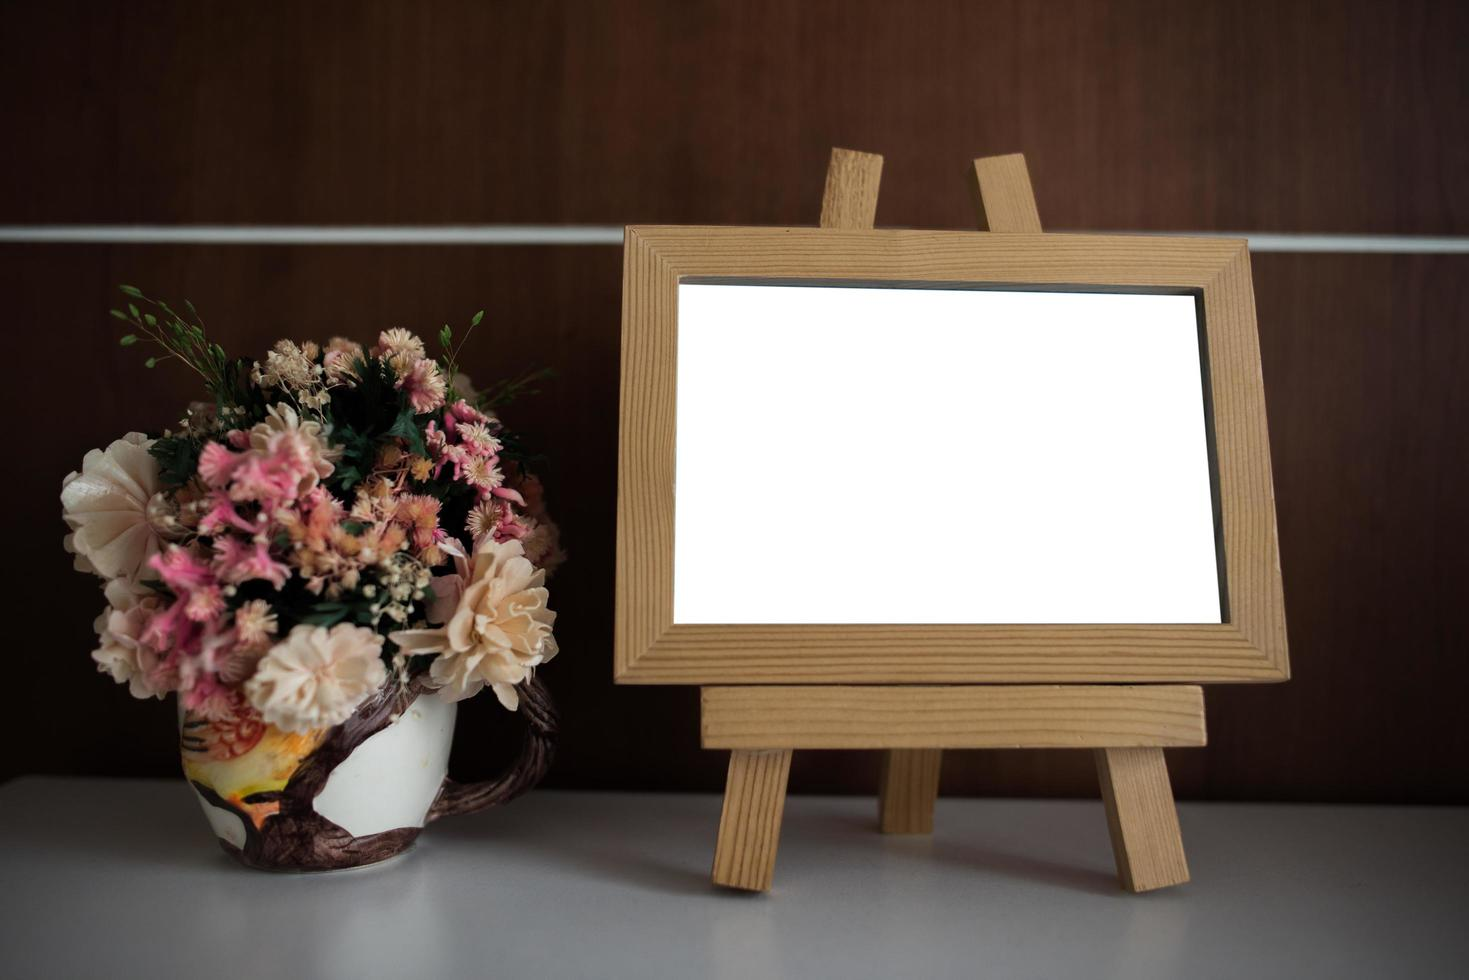 Photo frame on table with copy space